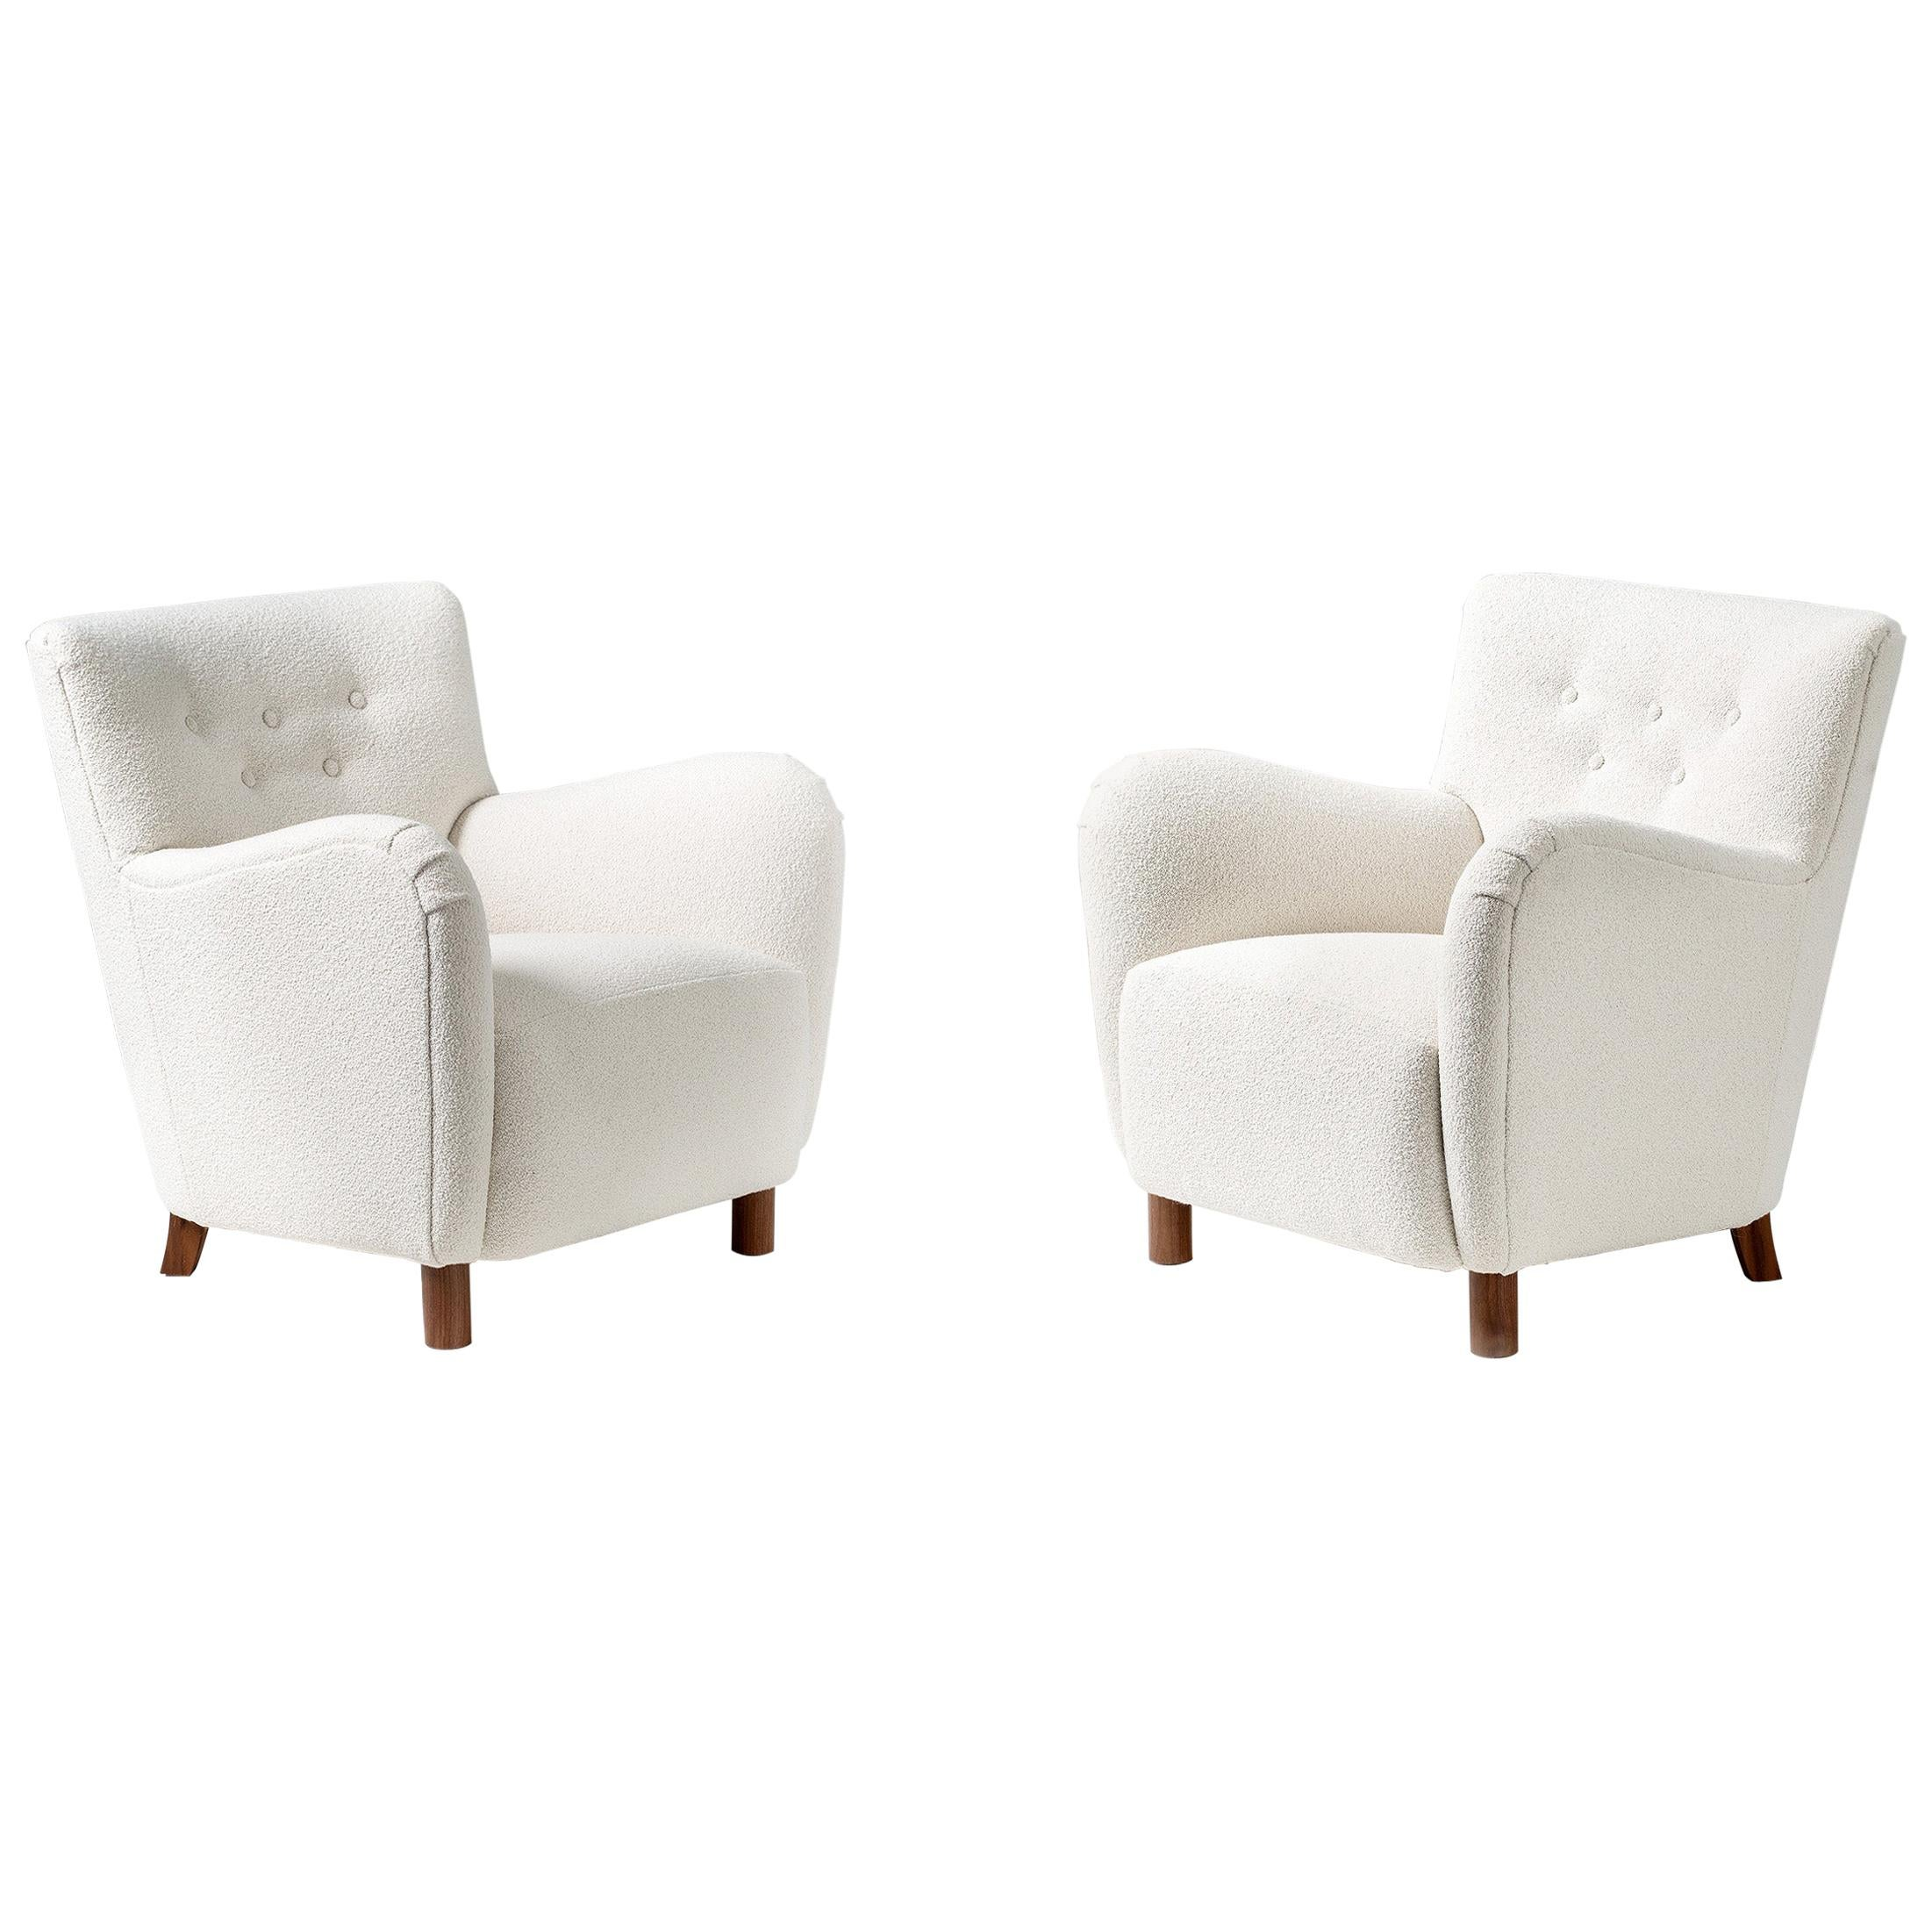 Custom Made Model 54 Boucle Lounge Chairs